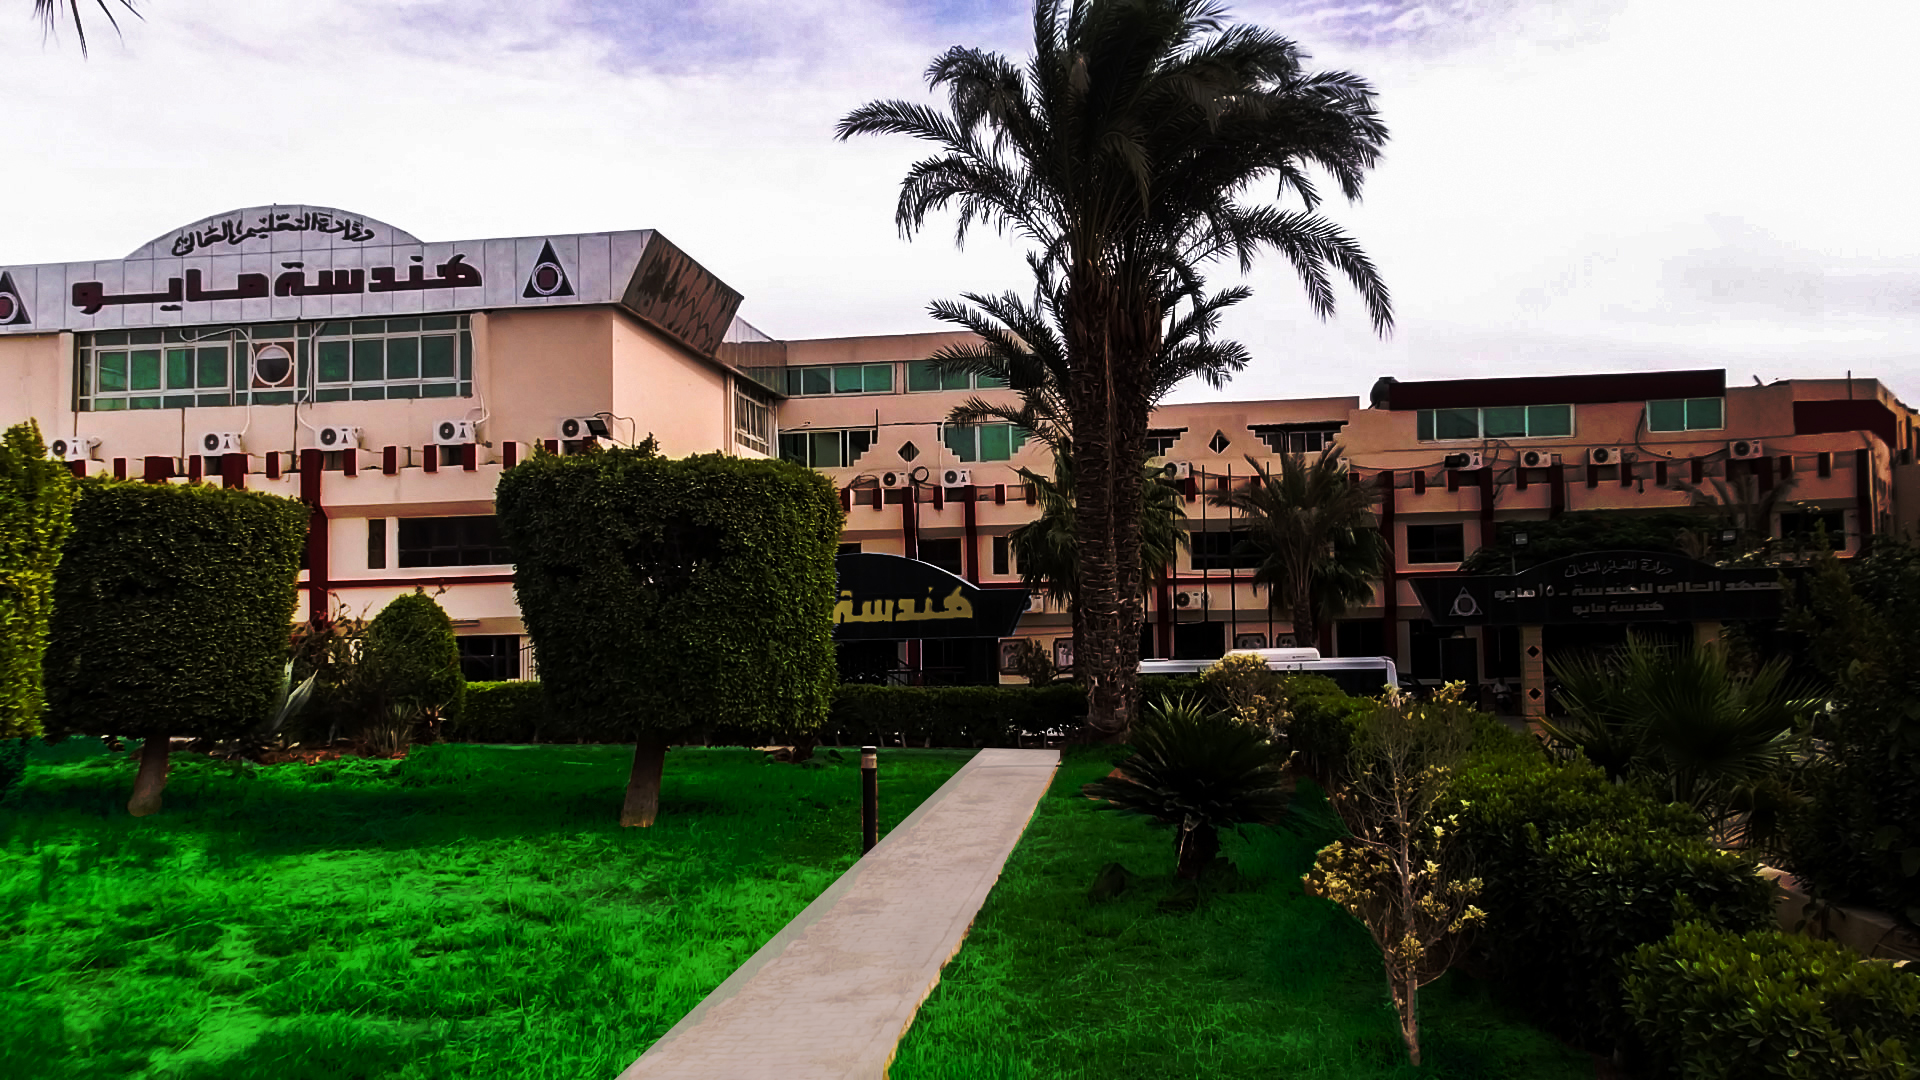 Higher Institute of Engineering - May 15